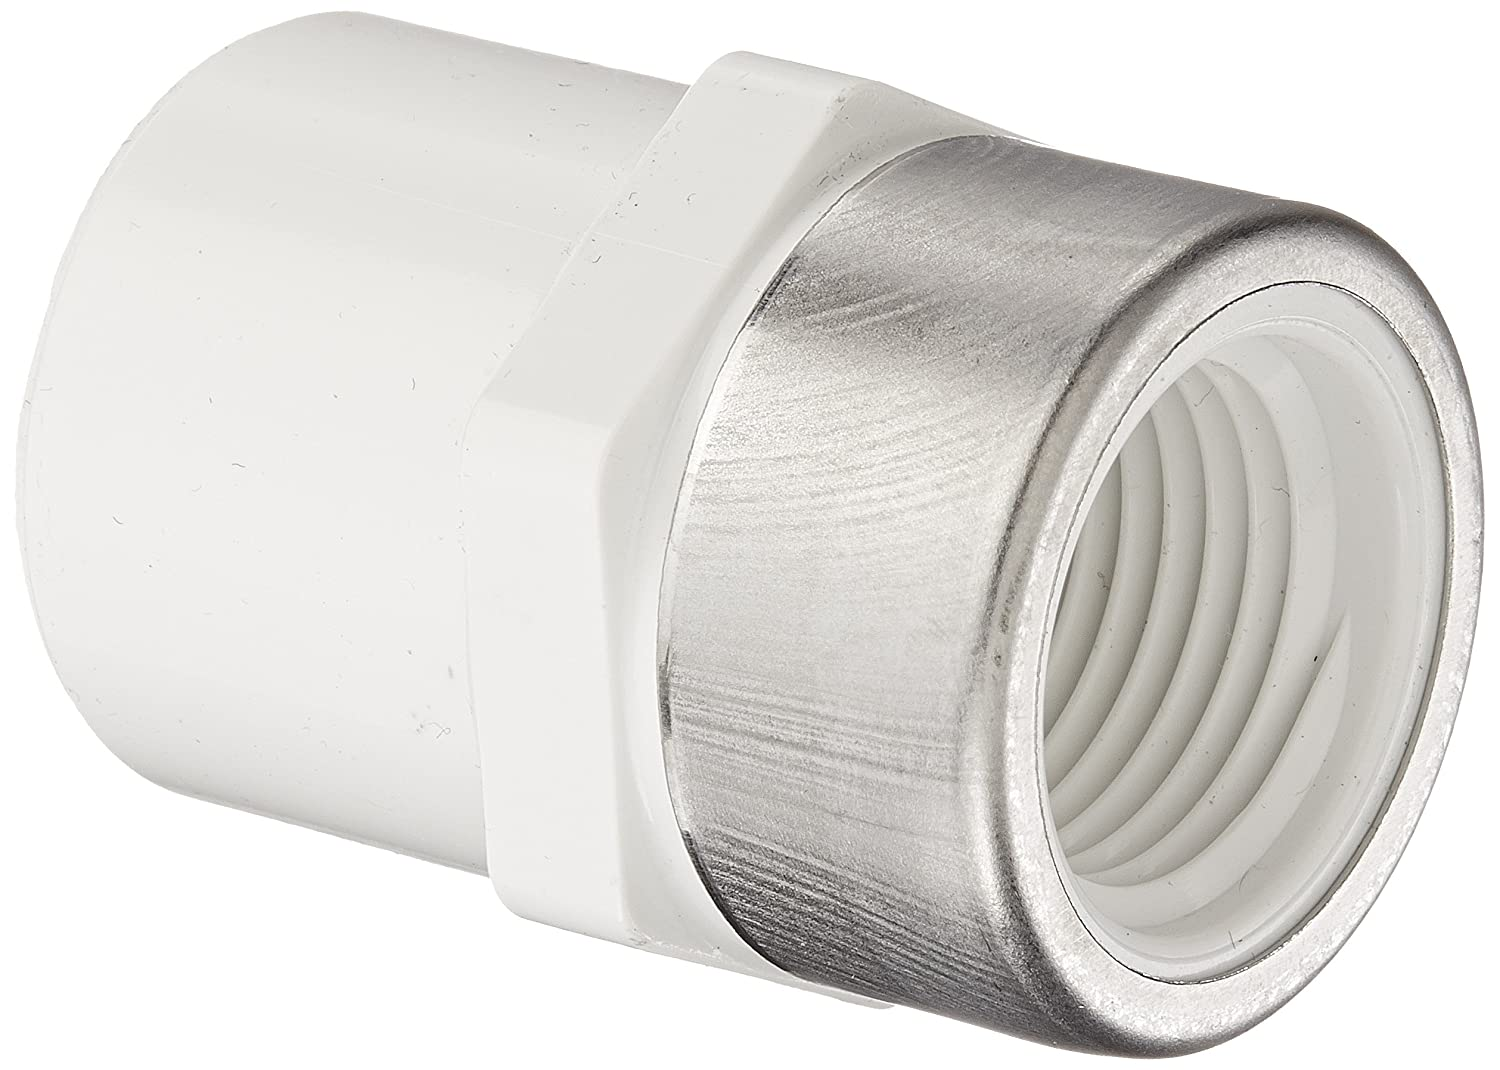 Schedule 40 1 Socket x 1 Steel Reinforced NPT Female Spears 435-SR Series PVC Pipe Fitting Adapter